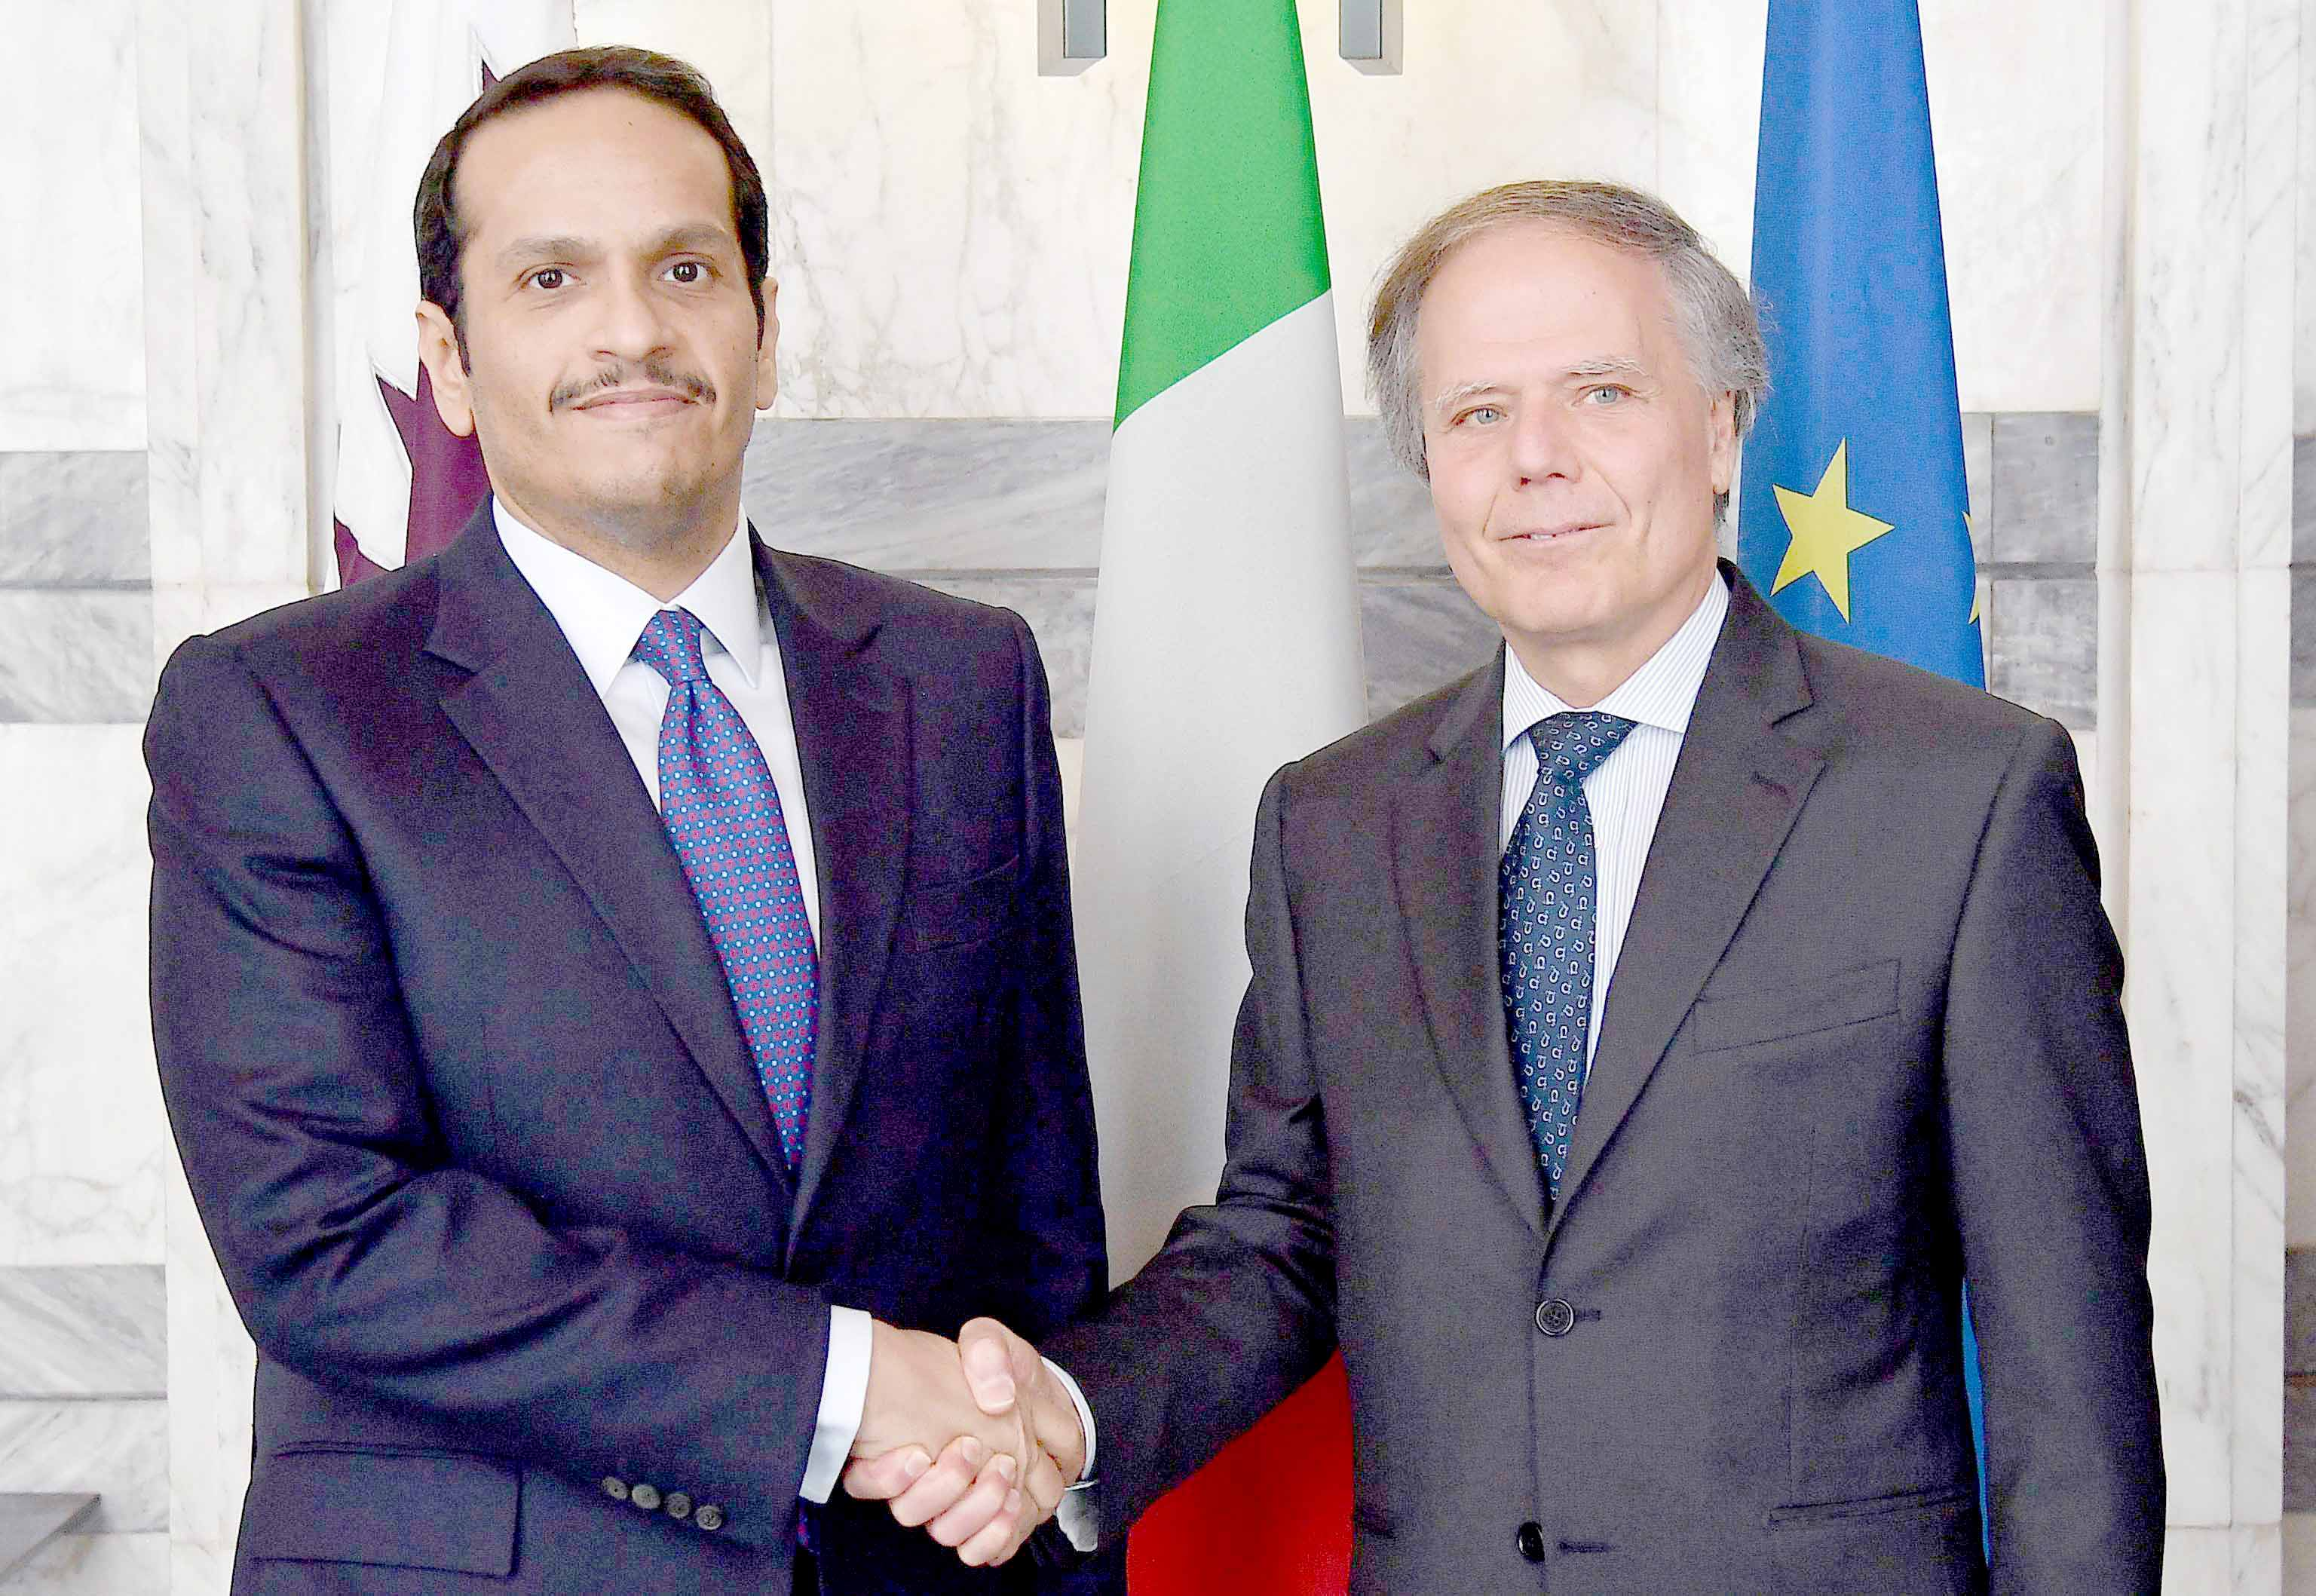 Stirring the pot. Italian Minister for Foreign Affairs Enzo Moavero Milanesi (R) meets with Qatari Deputy Prime Minister and Foreign Minister Sheikh Mohammed bin Abdulrahman bin Jassim al-Thani in Rome, April 15.(ANSA)